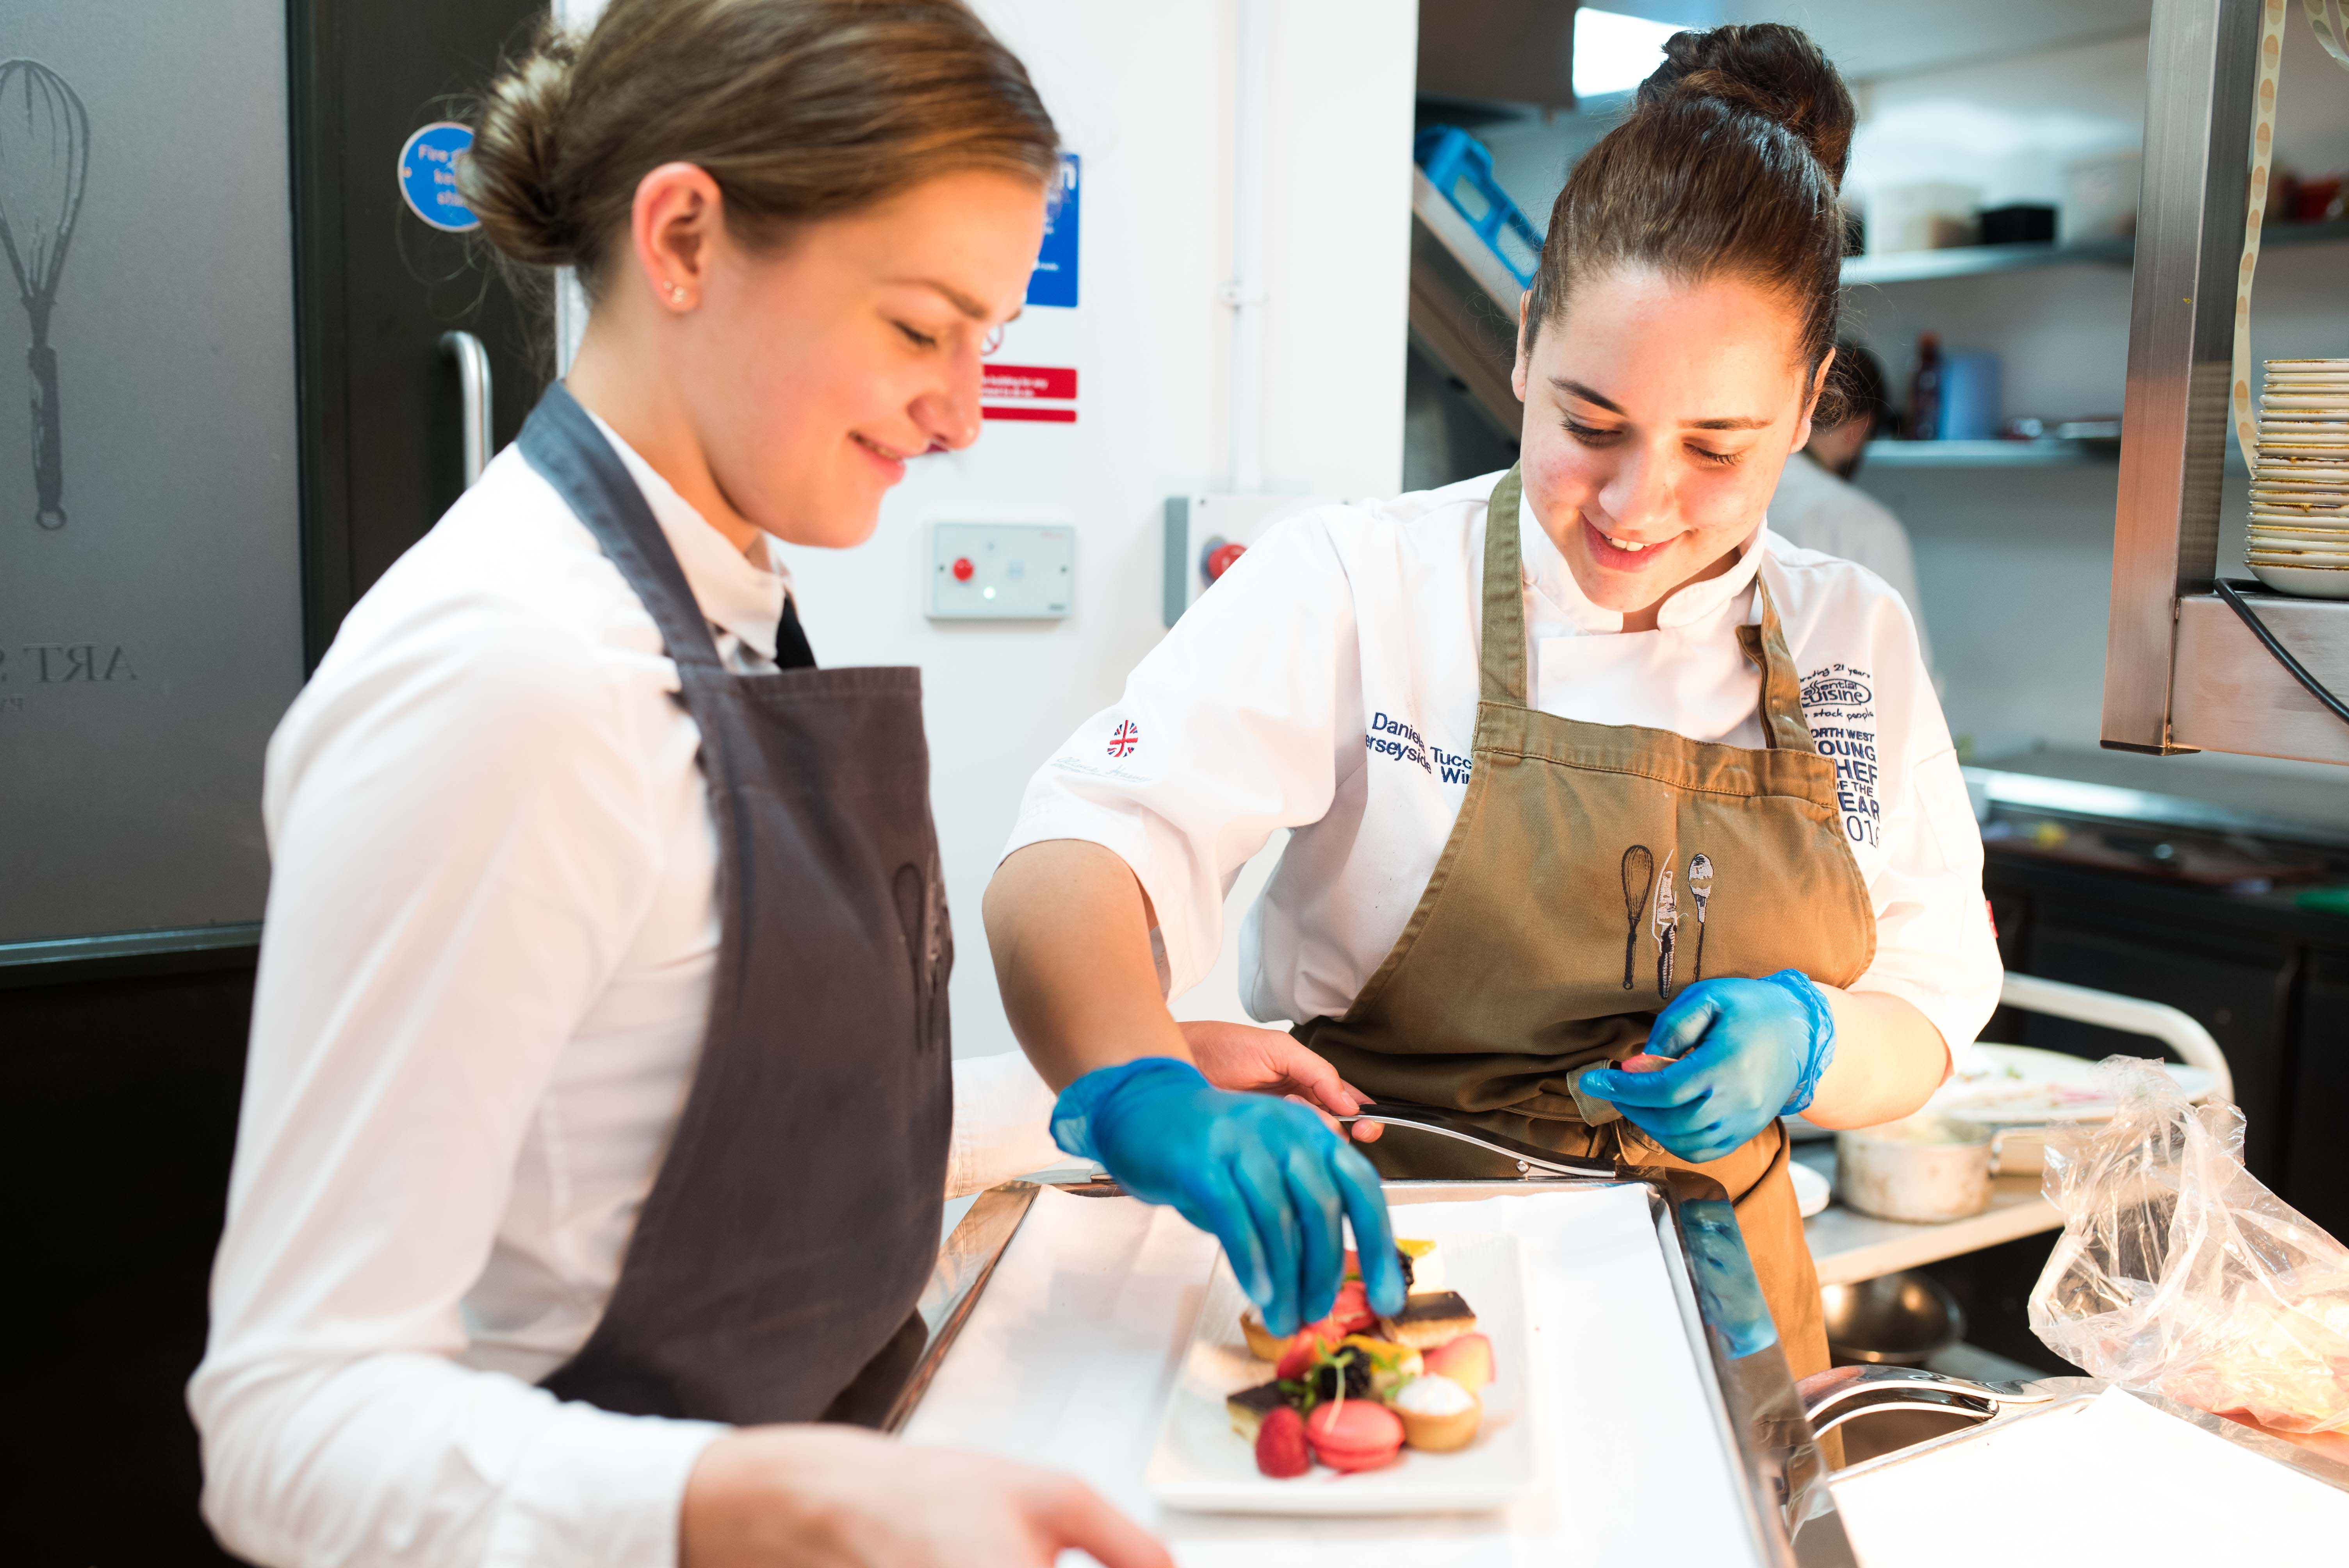 The Revolution To Stop Losing Young And Talented Chefs To